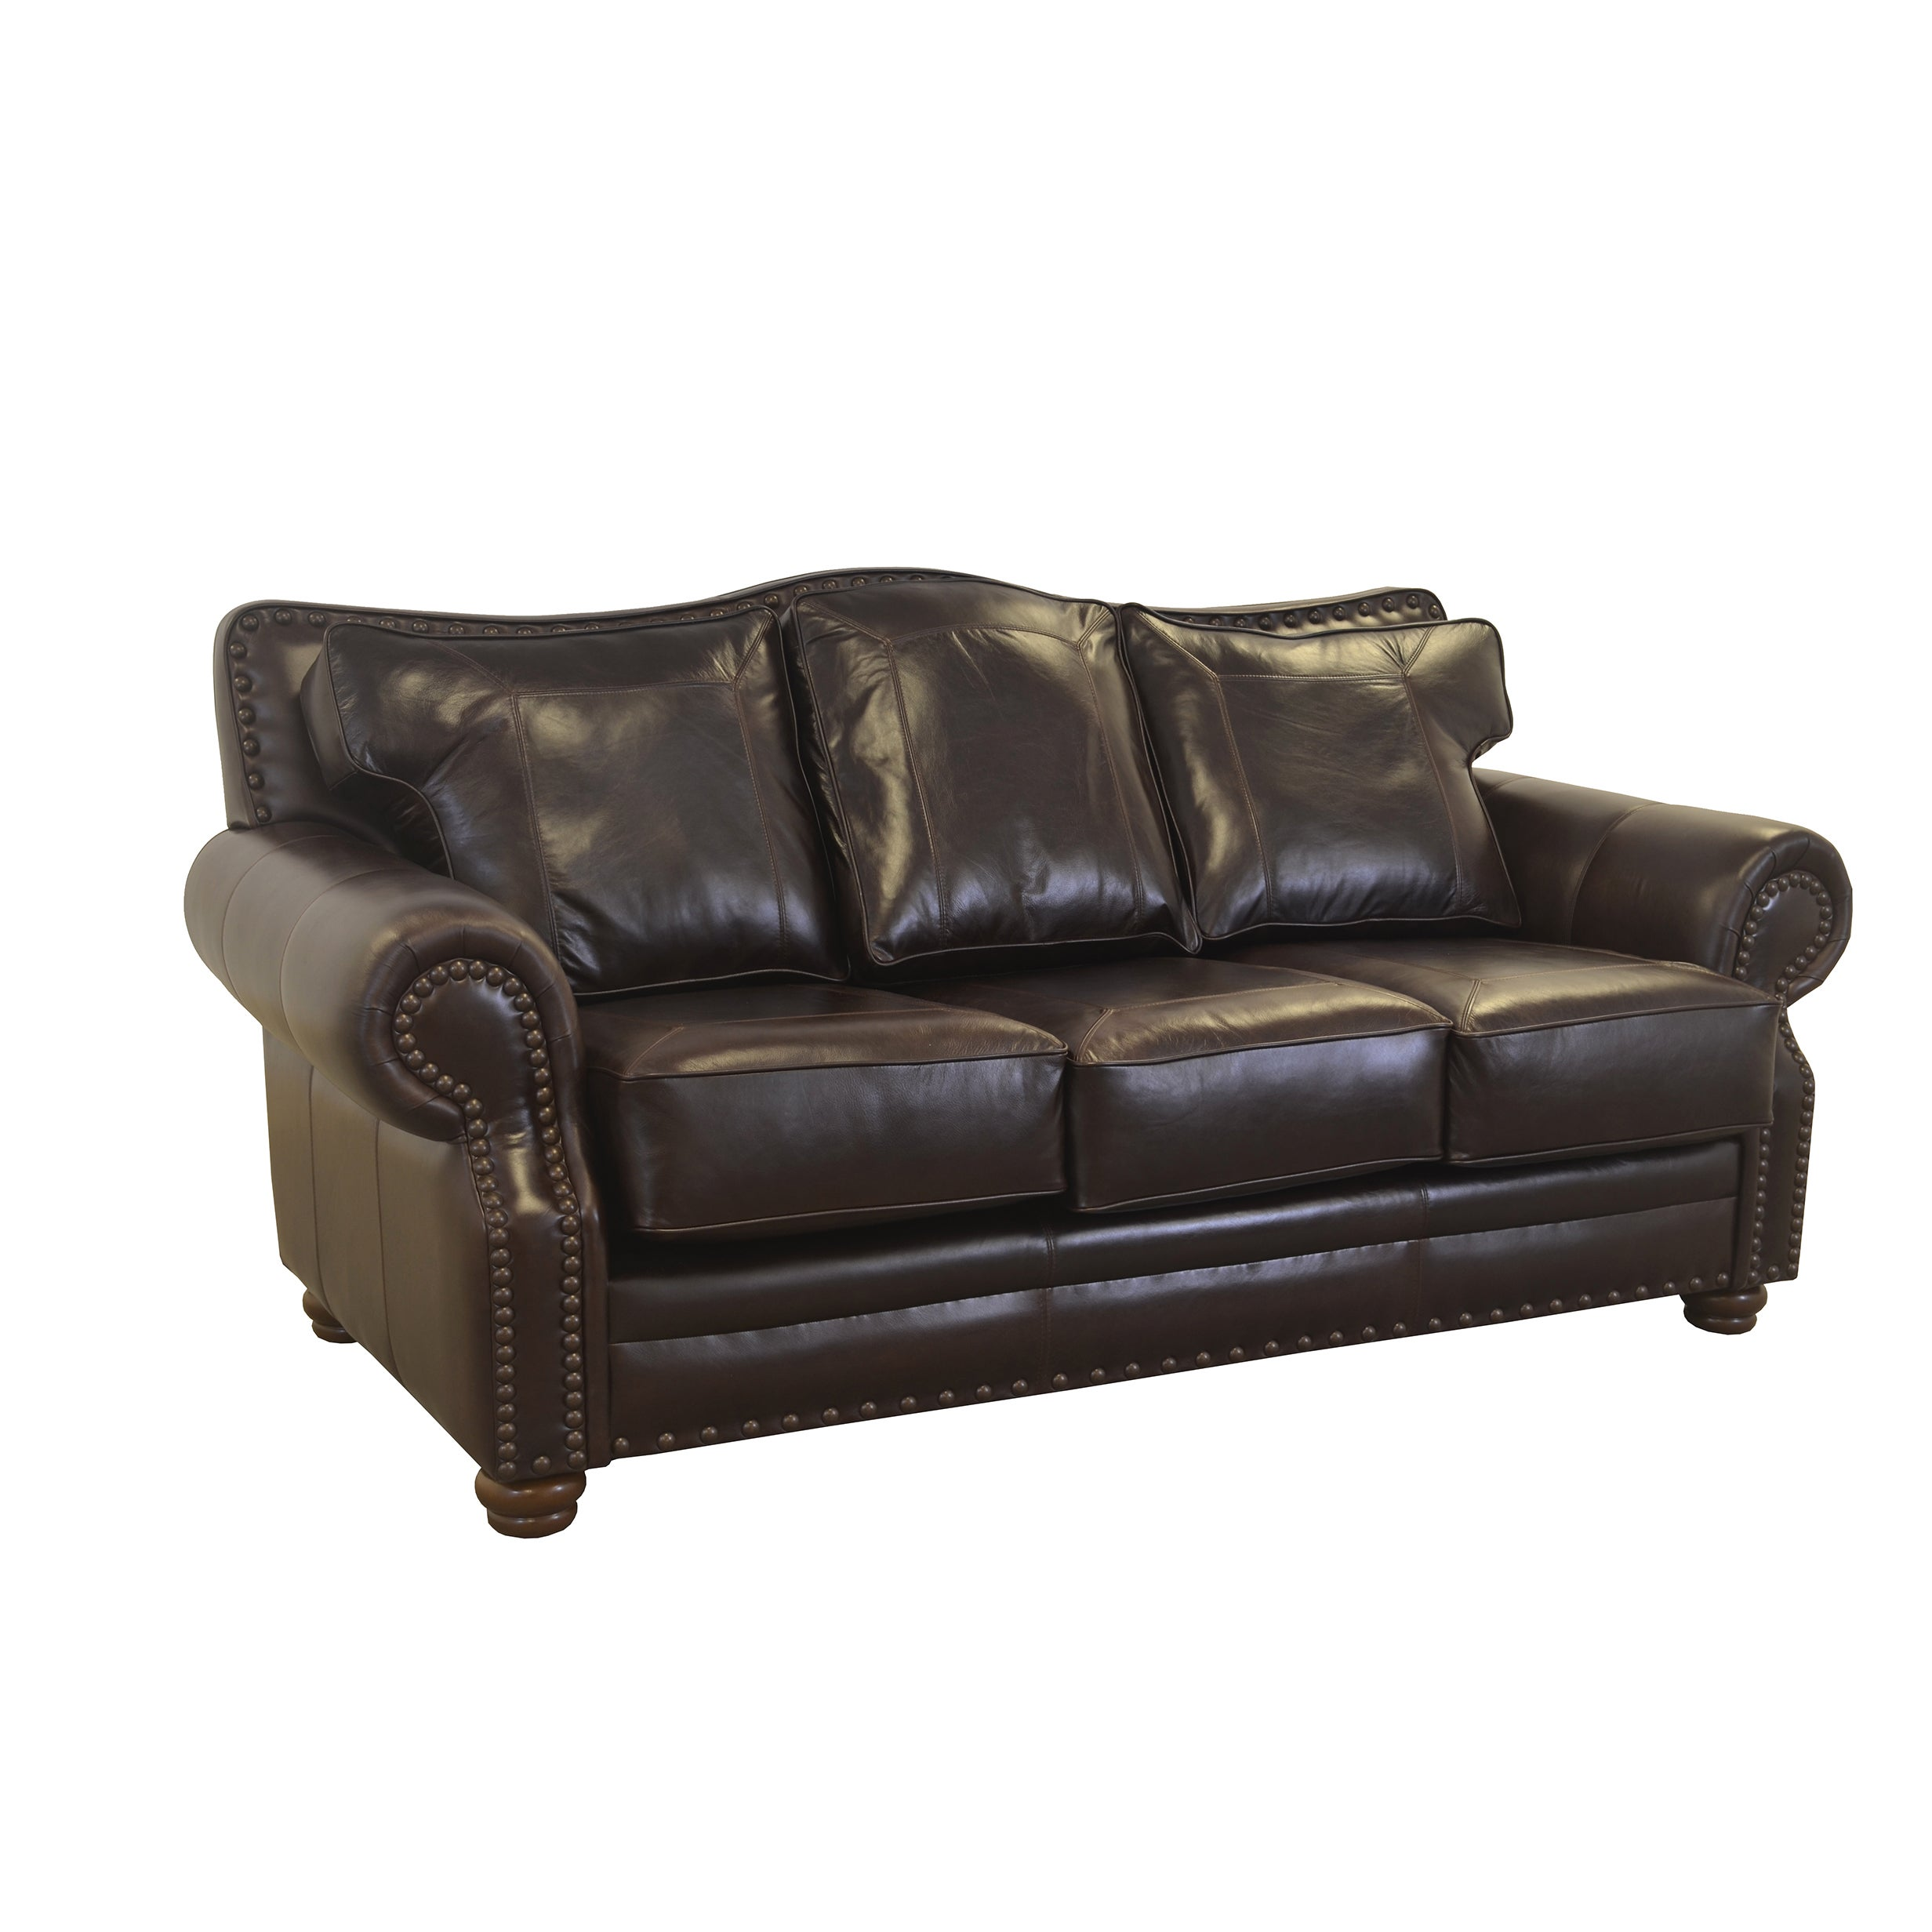 Shop Made To Order Westford Genuine Top Grain Leather Nailhead